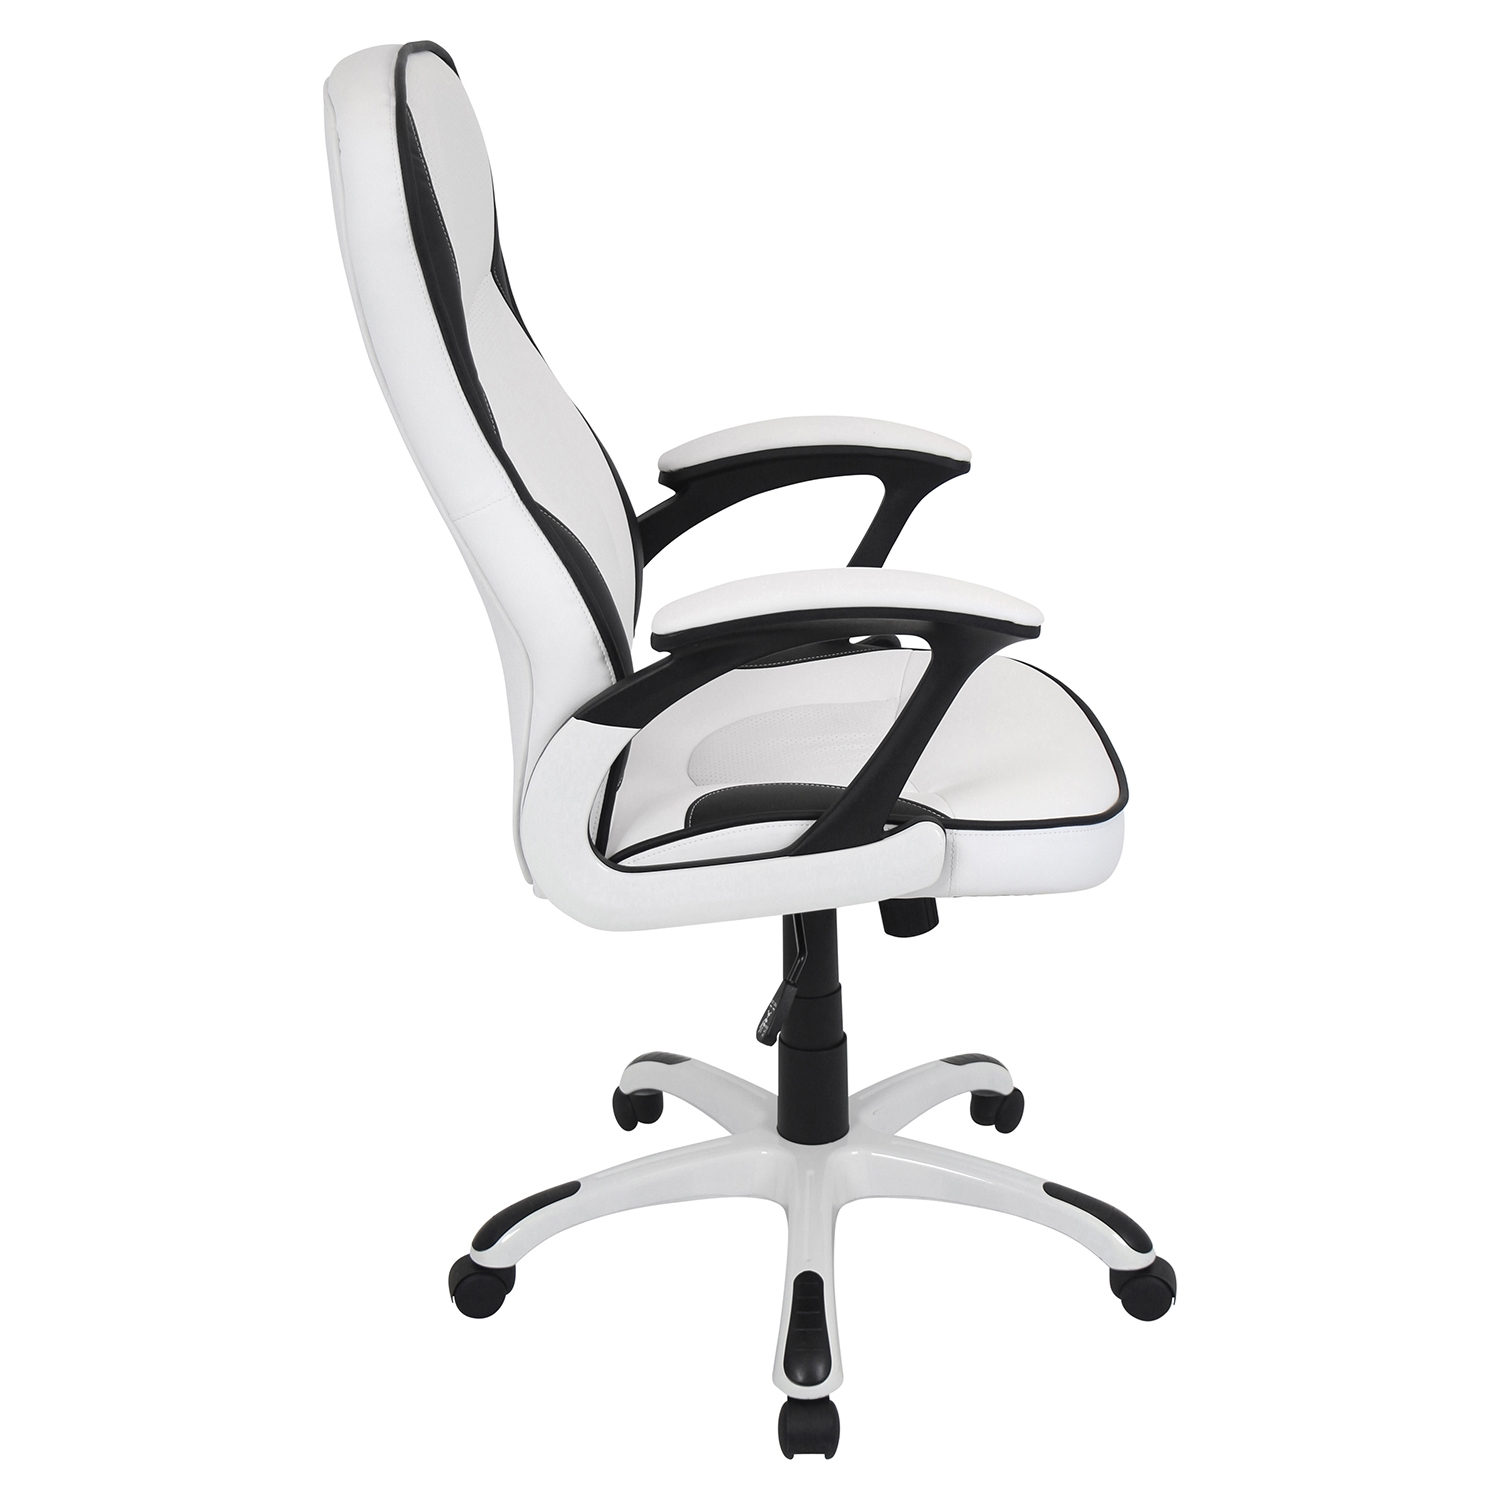 Storm Height Adjustable Office Chair - Swivel, White - LMS-OFC-AC-STORM-W